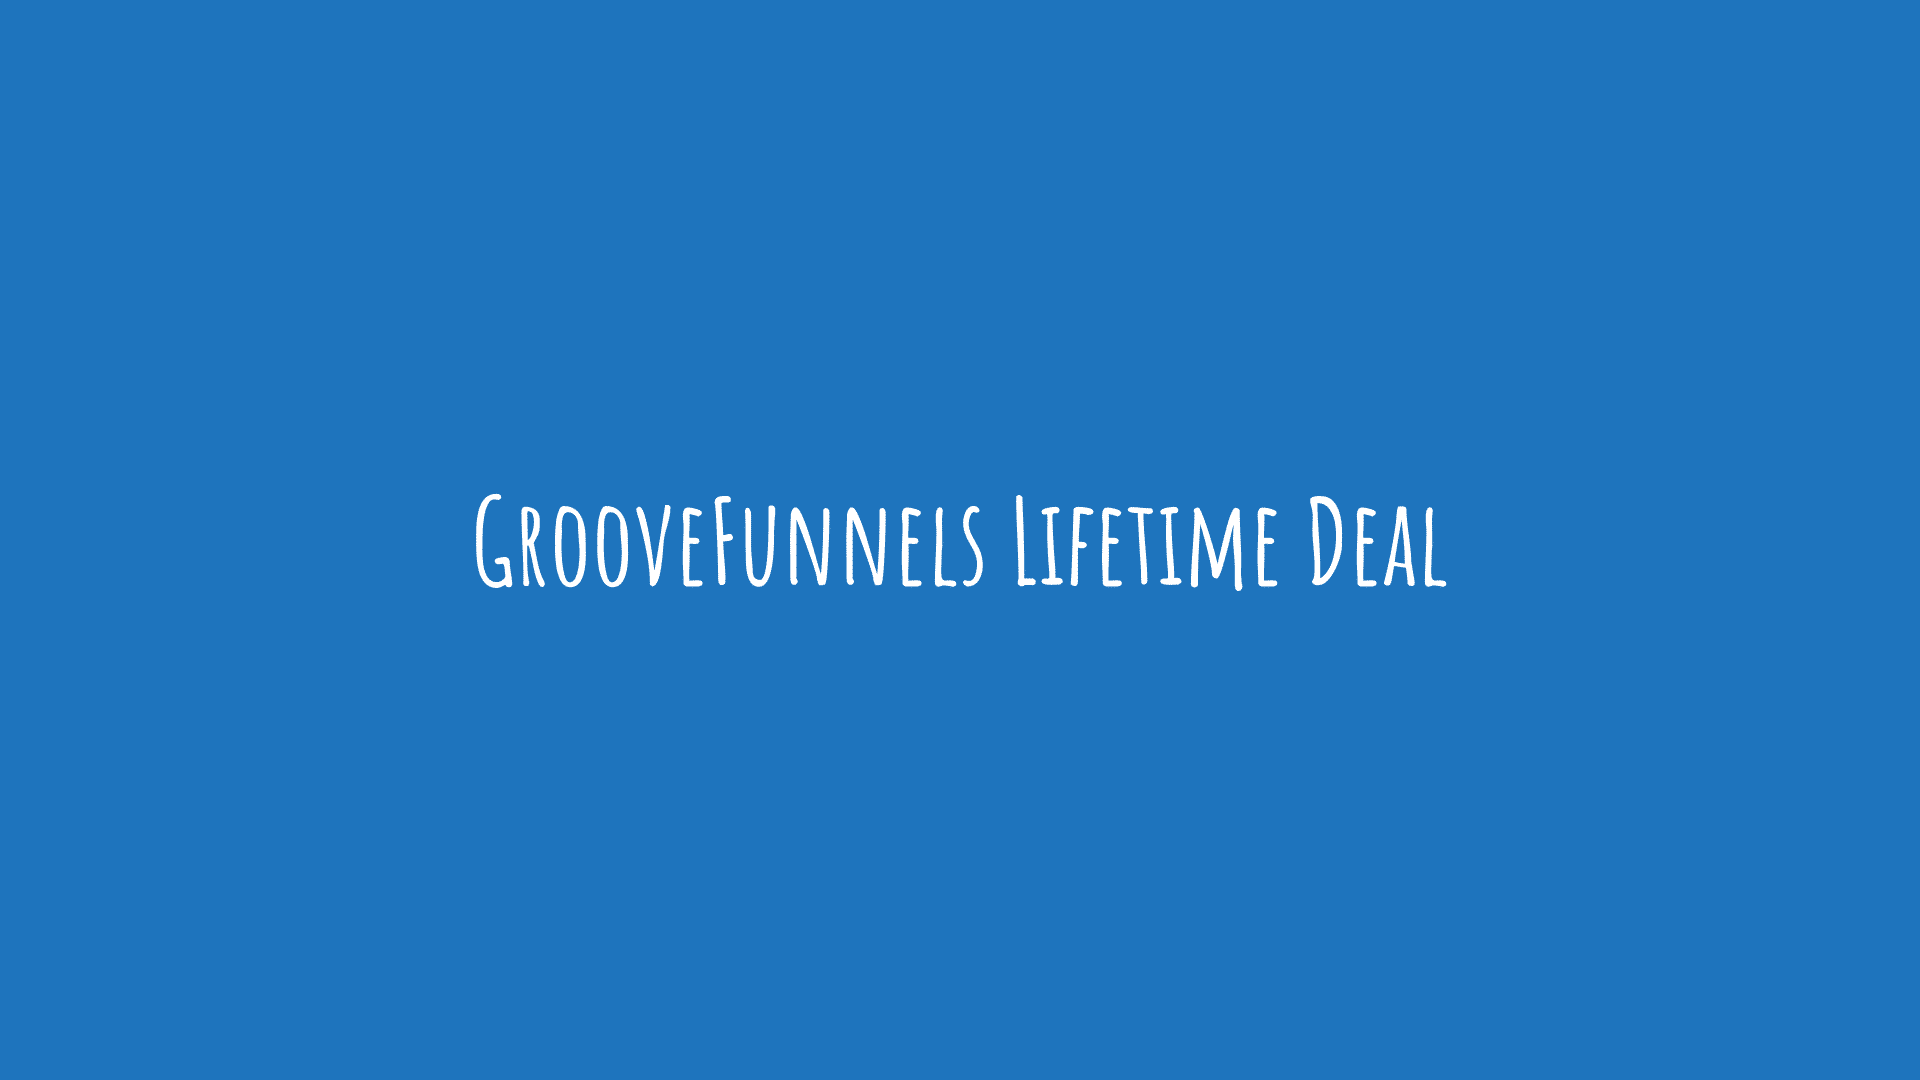 GrooveFunnels Lifetime Deal